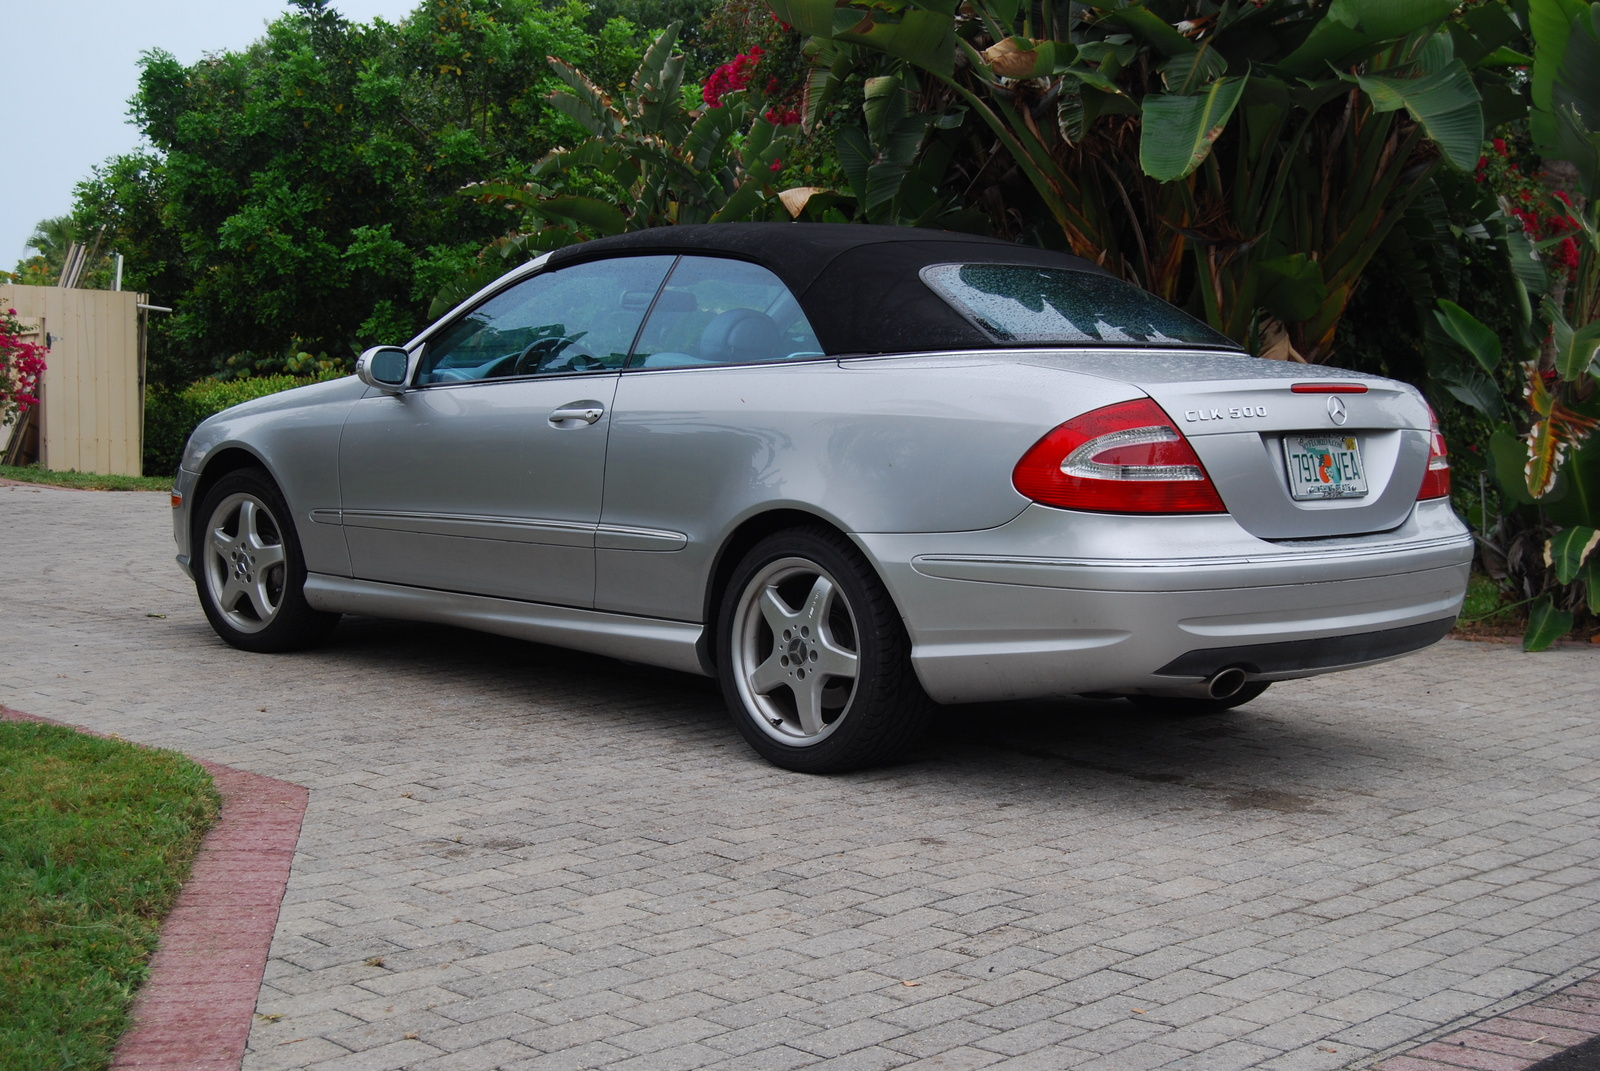 2004 mercedes benz clk class pictures cargurus for 2004 mercedes benz e320 review